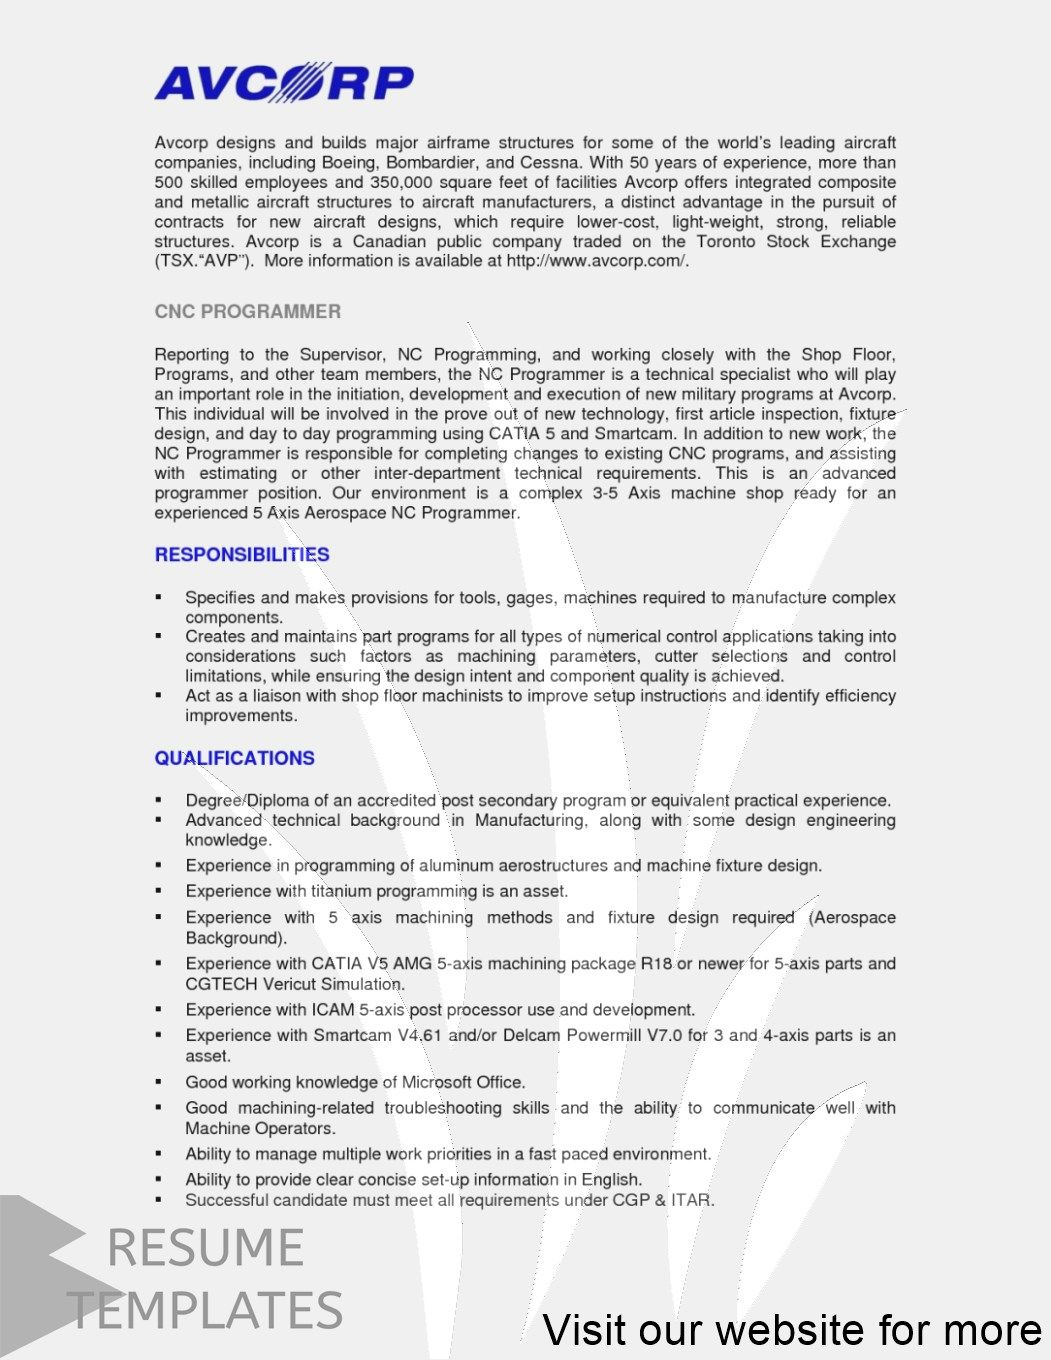 Resume Builder Free Online Free In 2020 Resume Cover Letter Examples Resume Template Free Resume Builder